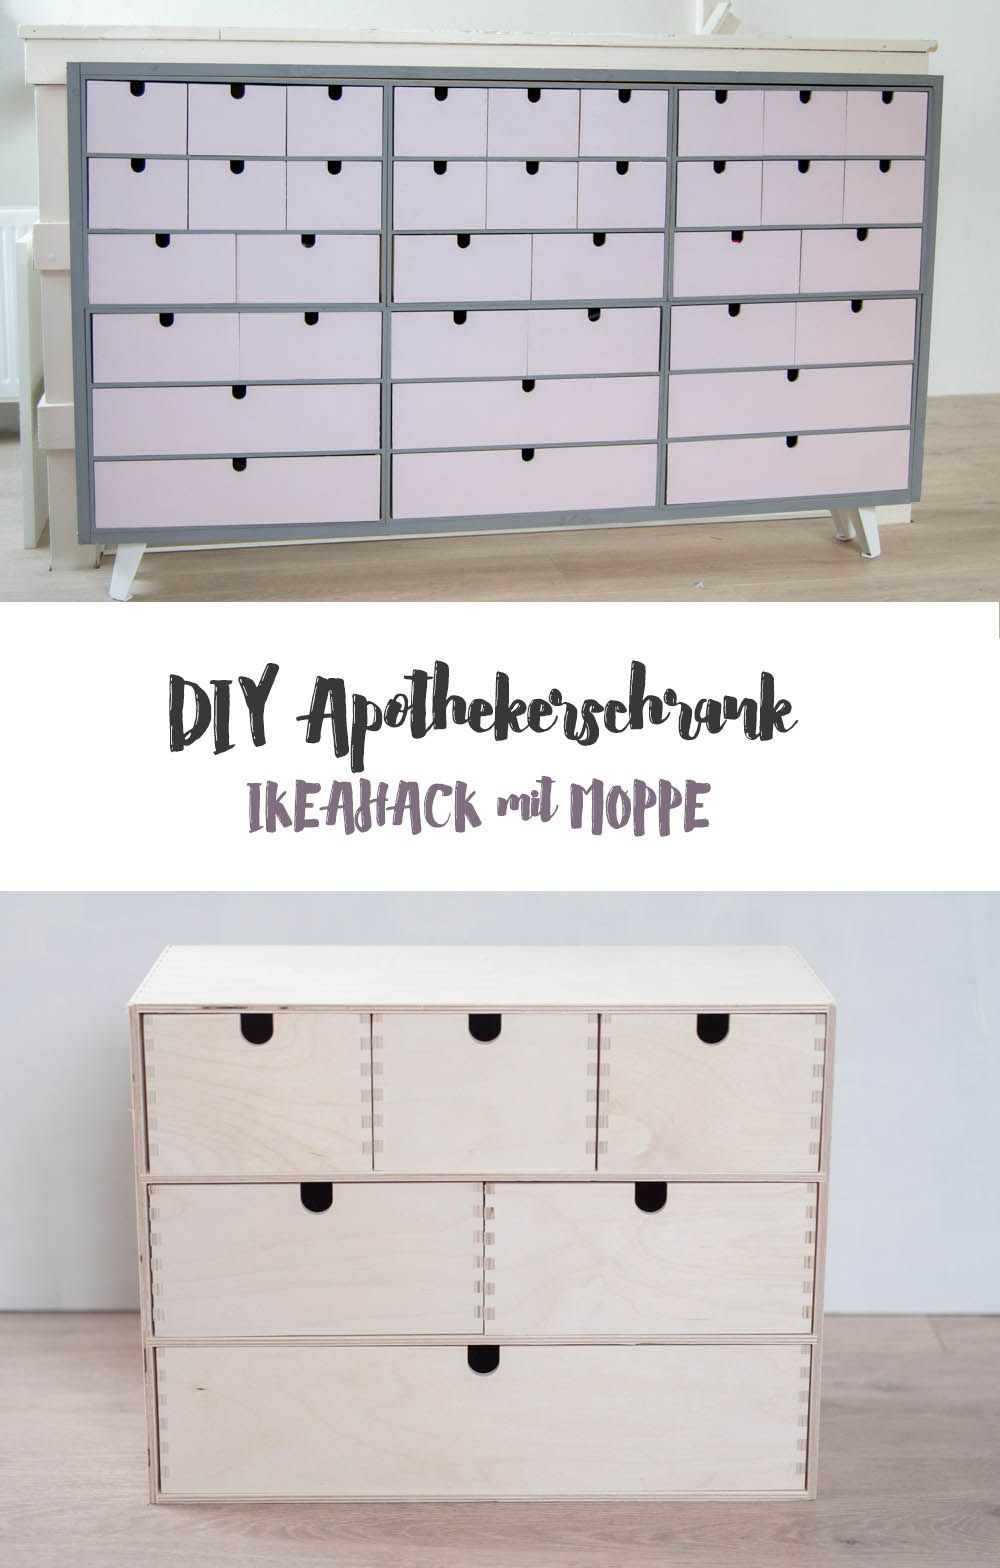 Best Totally Free Build A Diy Pharmacy Cabinet From Ikea Moppe